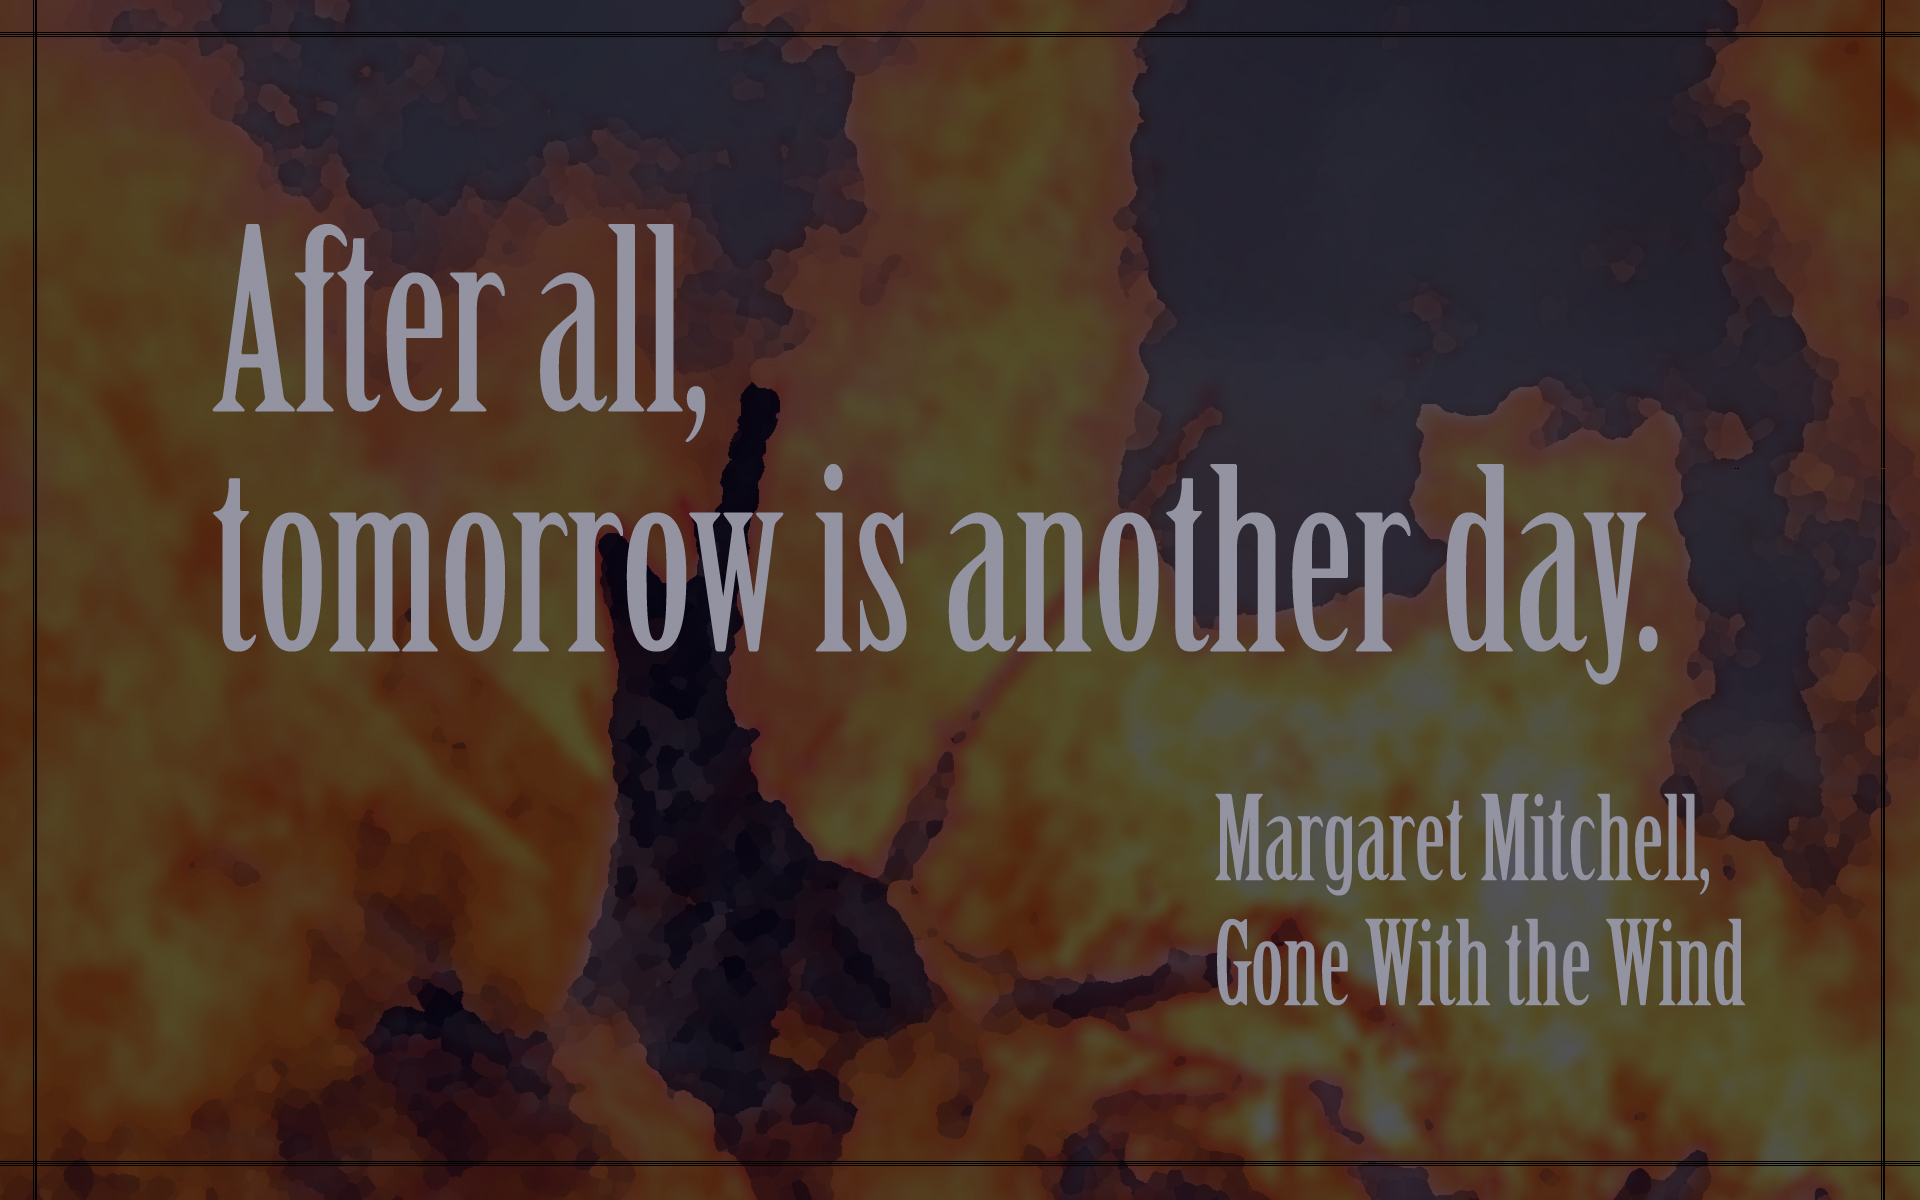 Tomorrow Funny Quotes Quotesgram: Another Day Quotes. QuotesGram